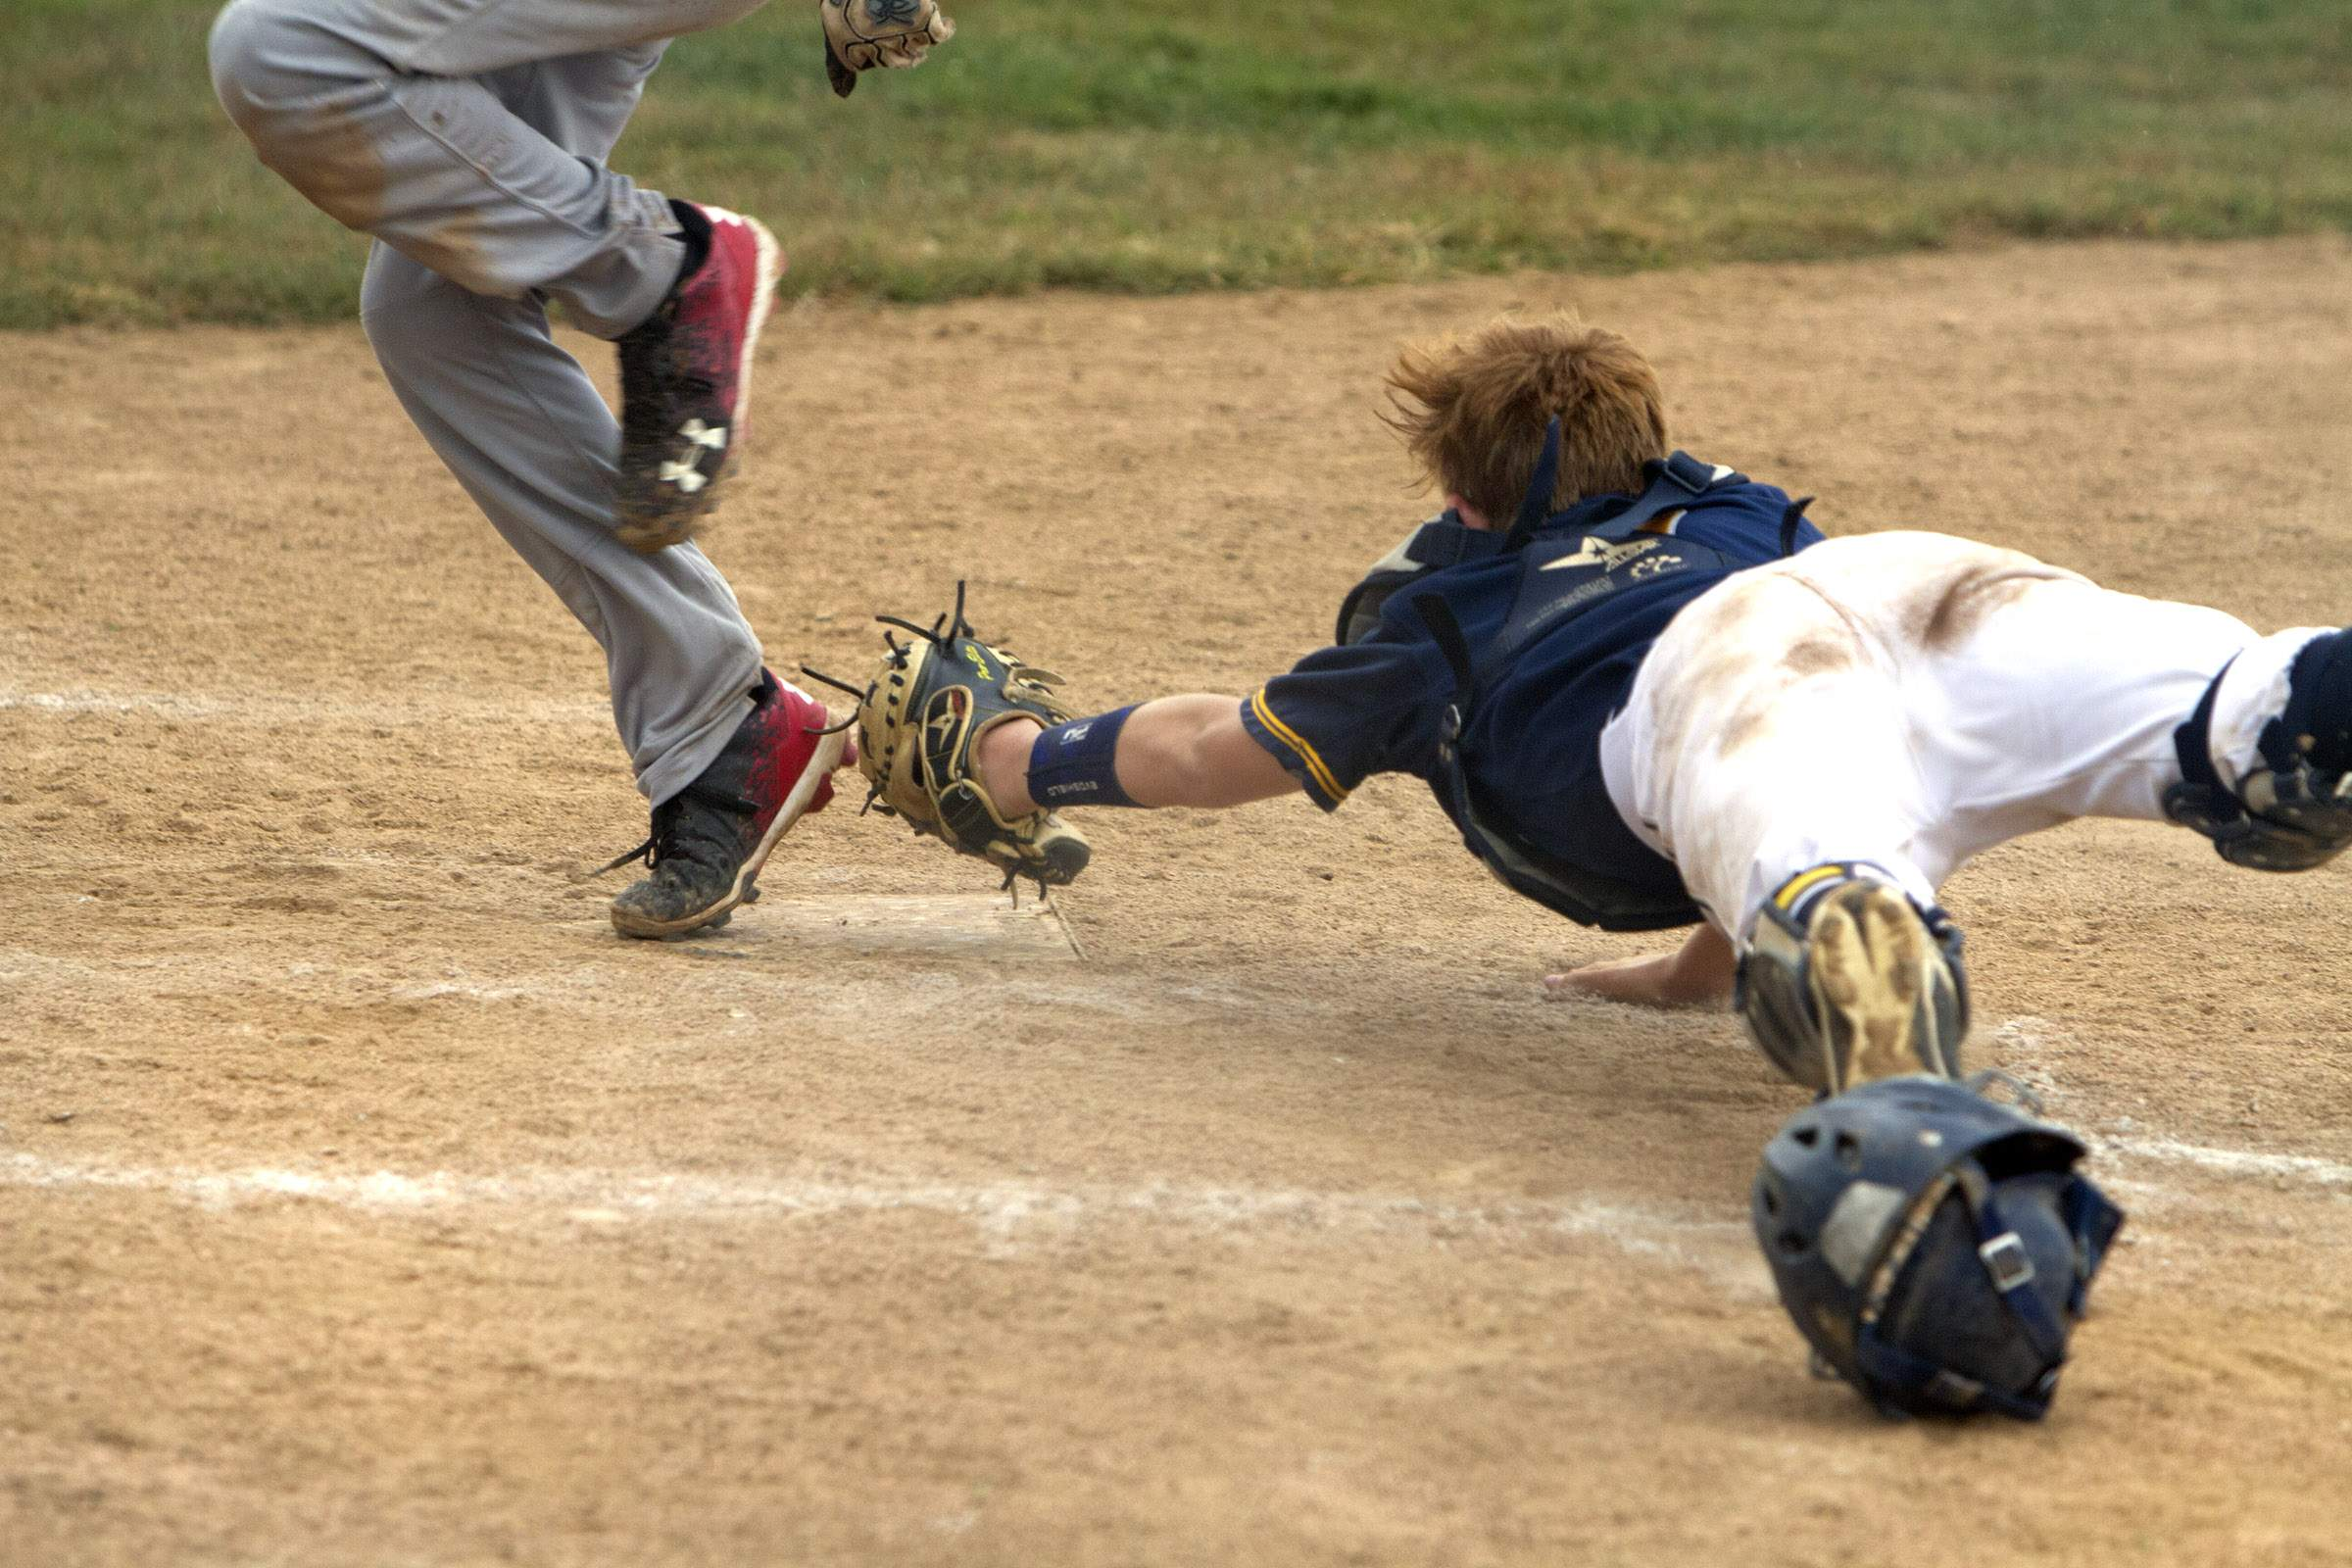 Lukas Shrum tries to tag a runner, but a foul ball was ruled so the run didn't count.